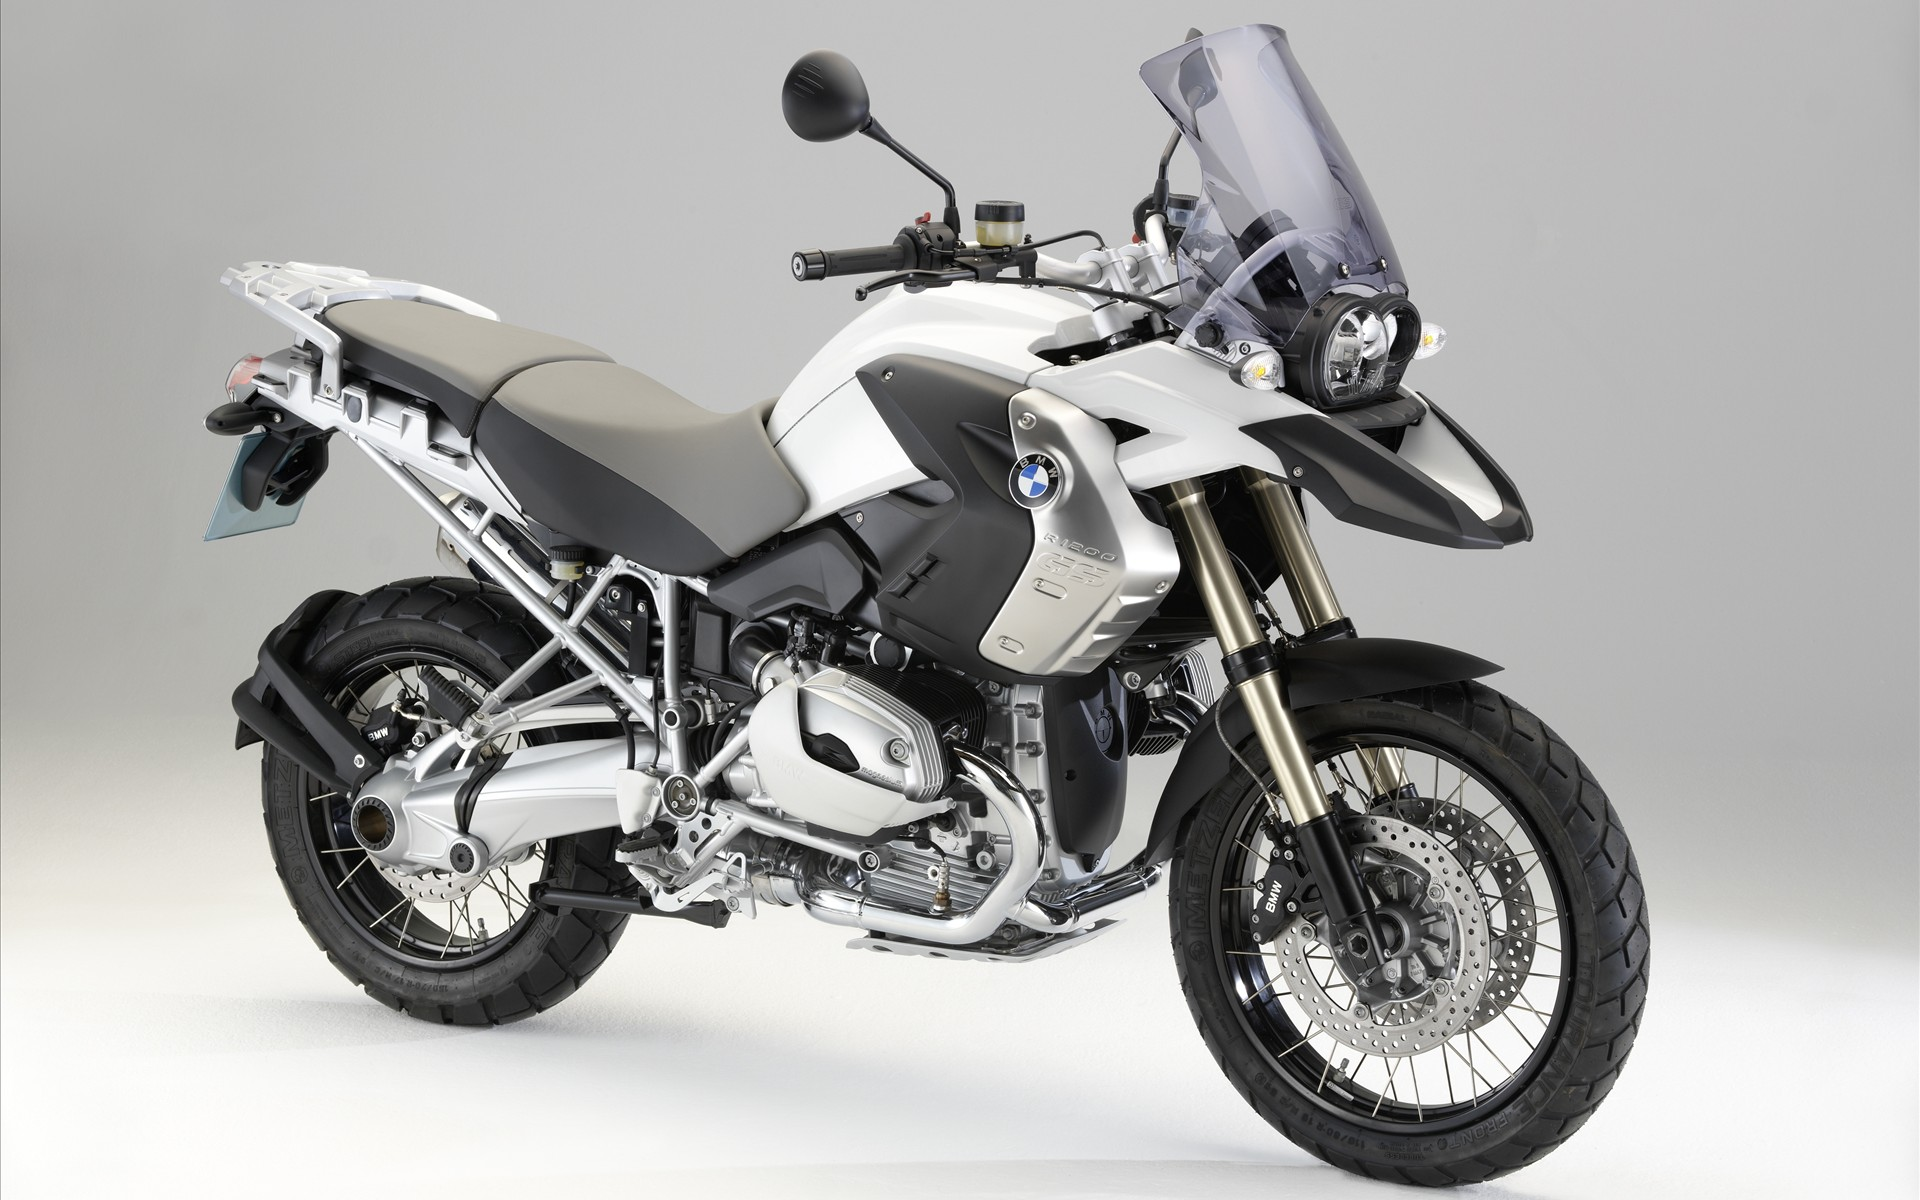 BMW New Special Edition R 1200 GS 276.5 Kb